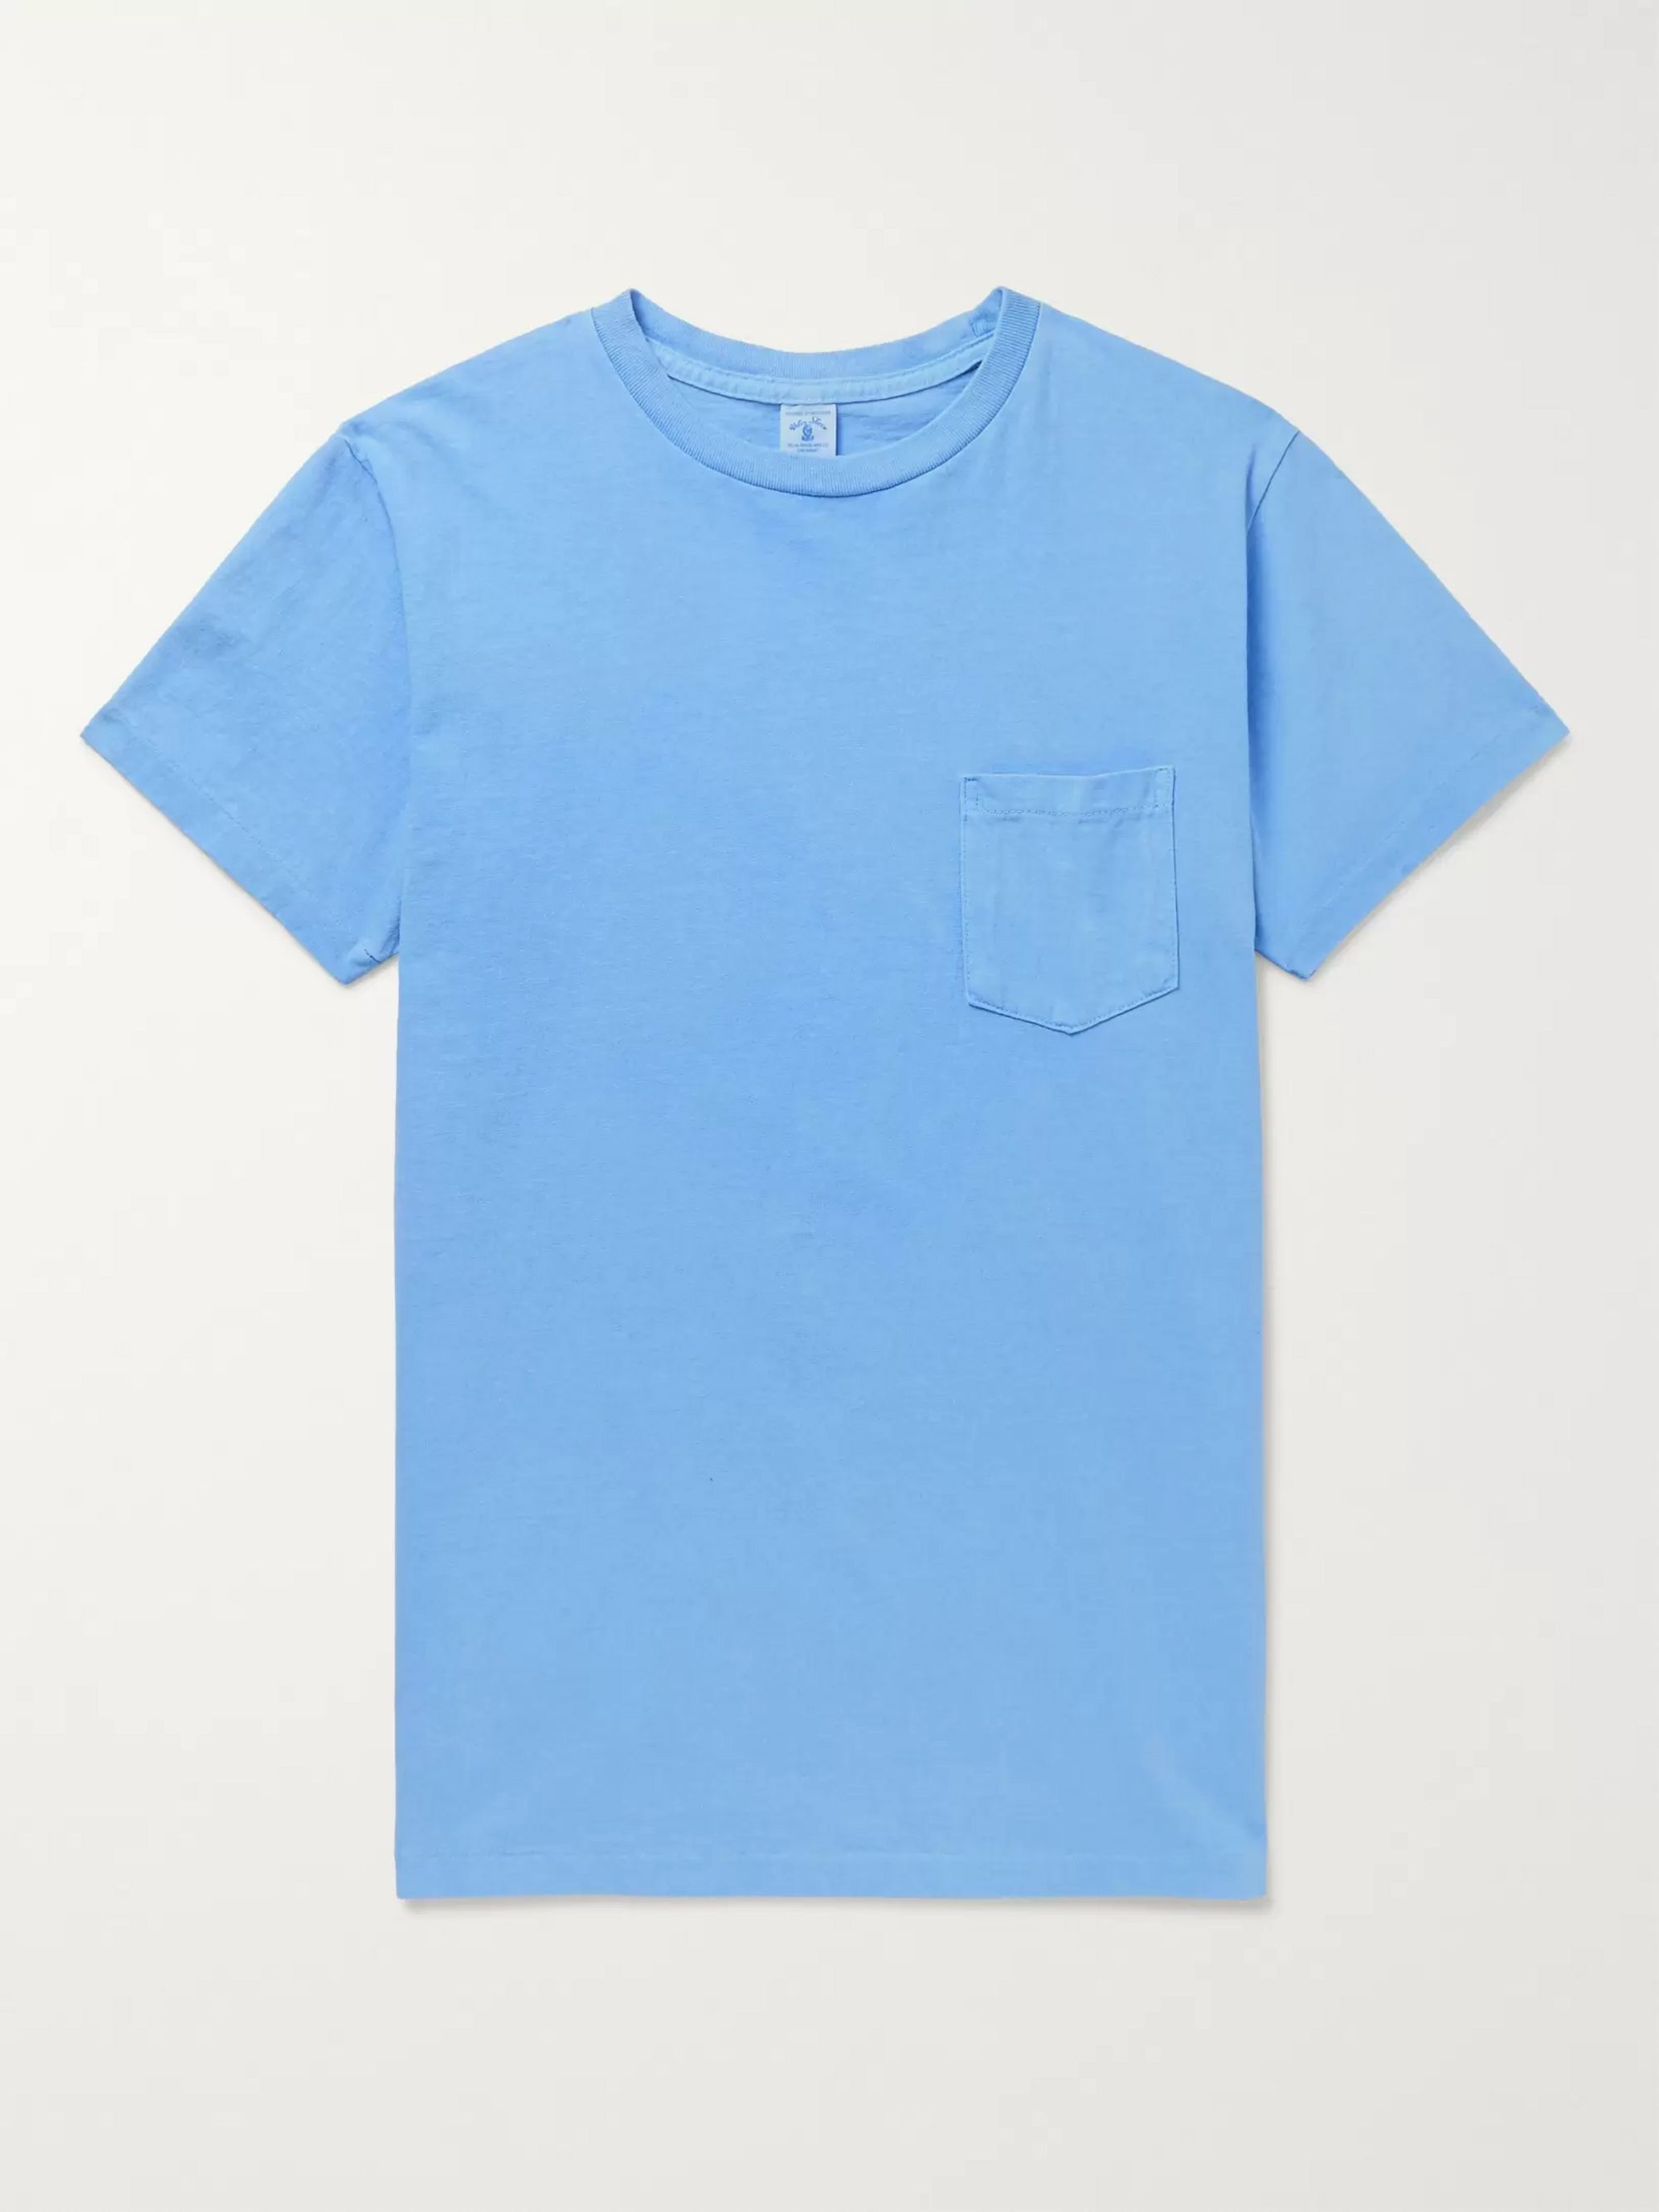 Velva Sheen Garment-Dyed Cotton-Jersey T-Shirt